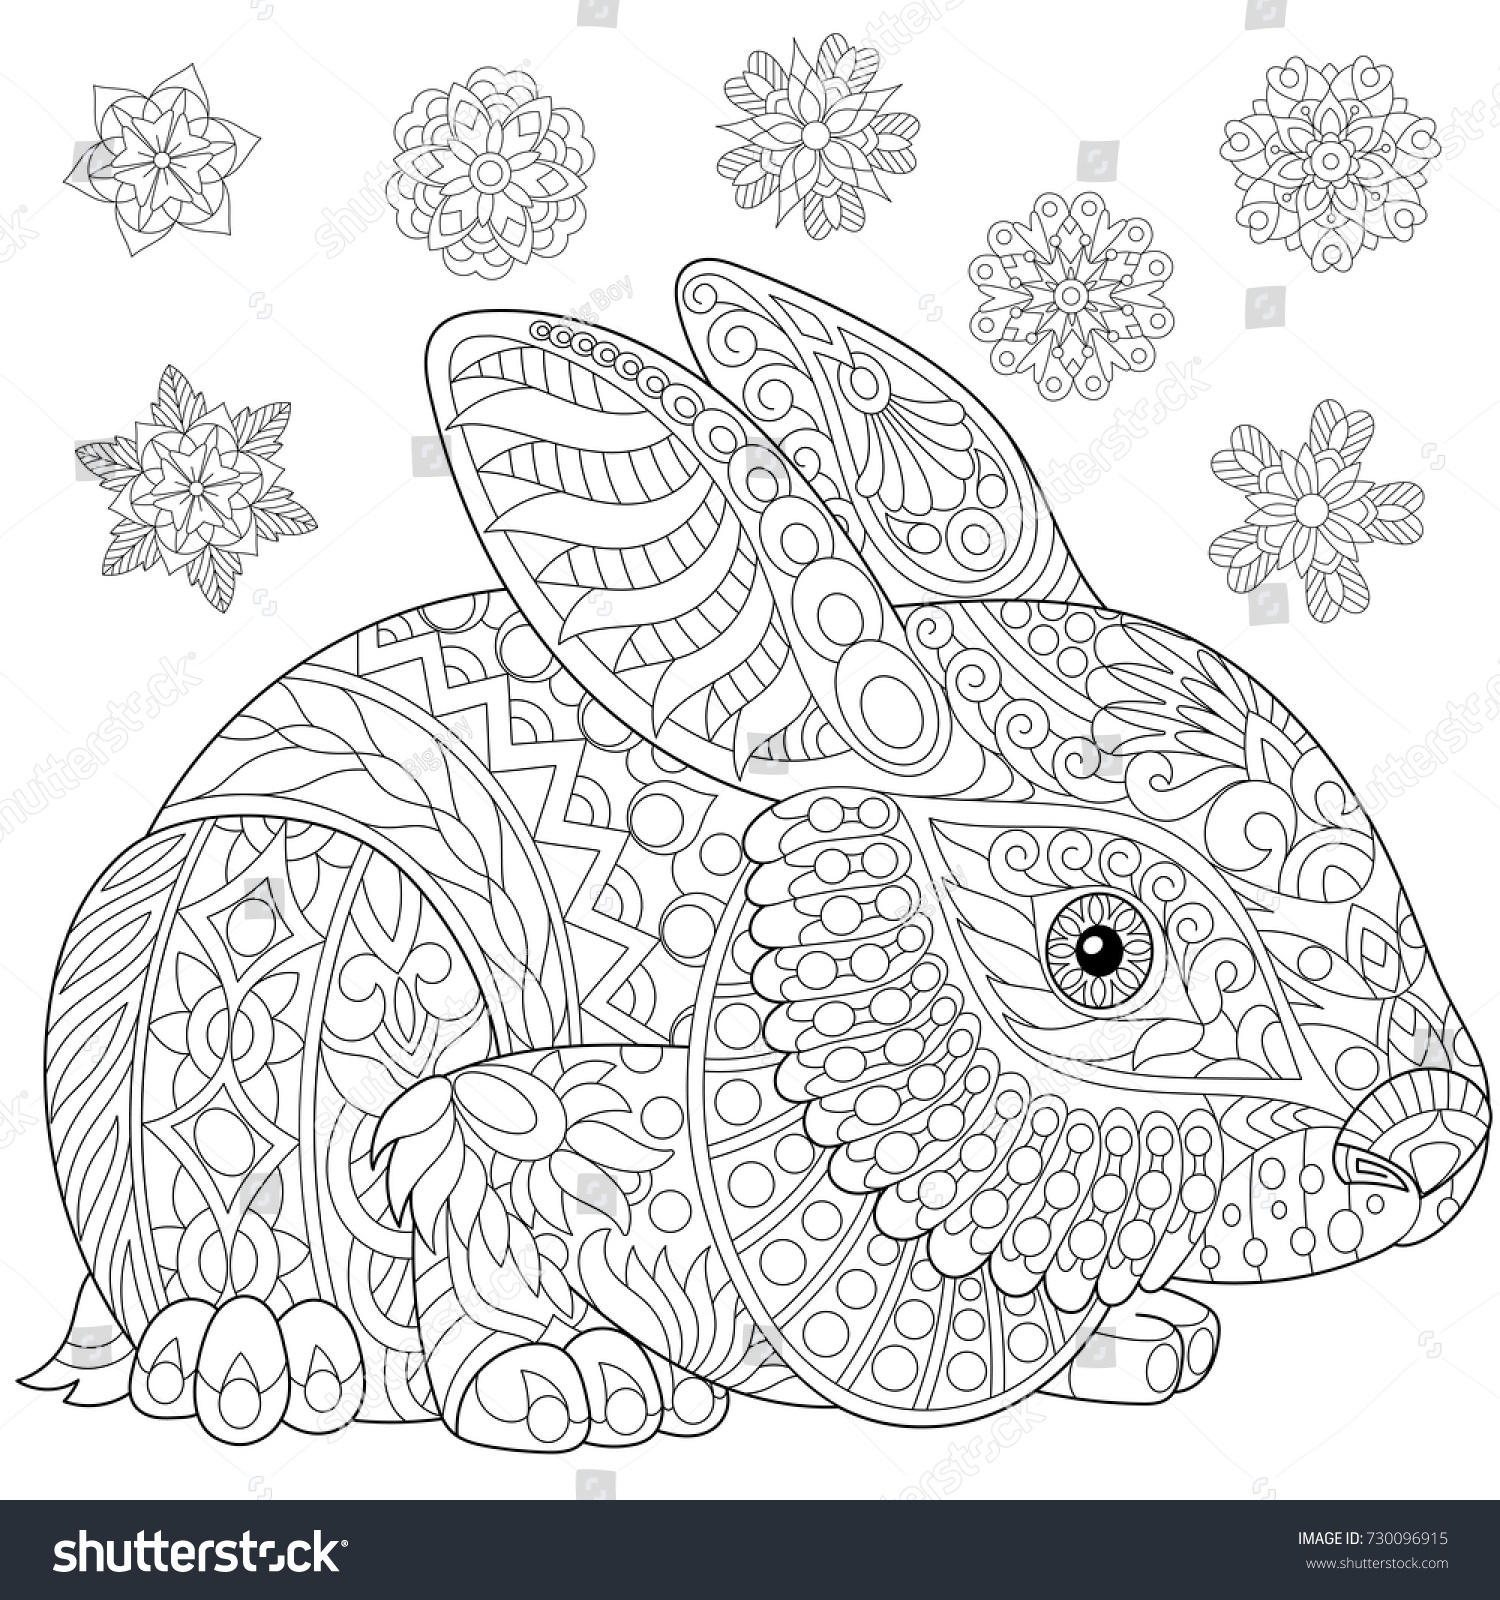 Coloring Page Rabbit Bunny Winter Snowflakes Stock Vector (Royalty ...